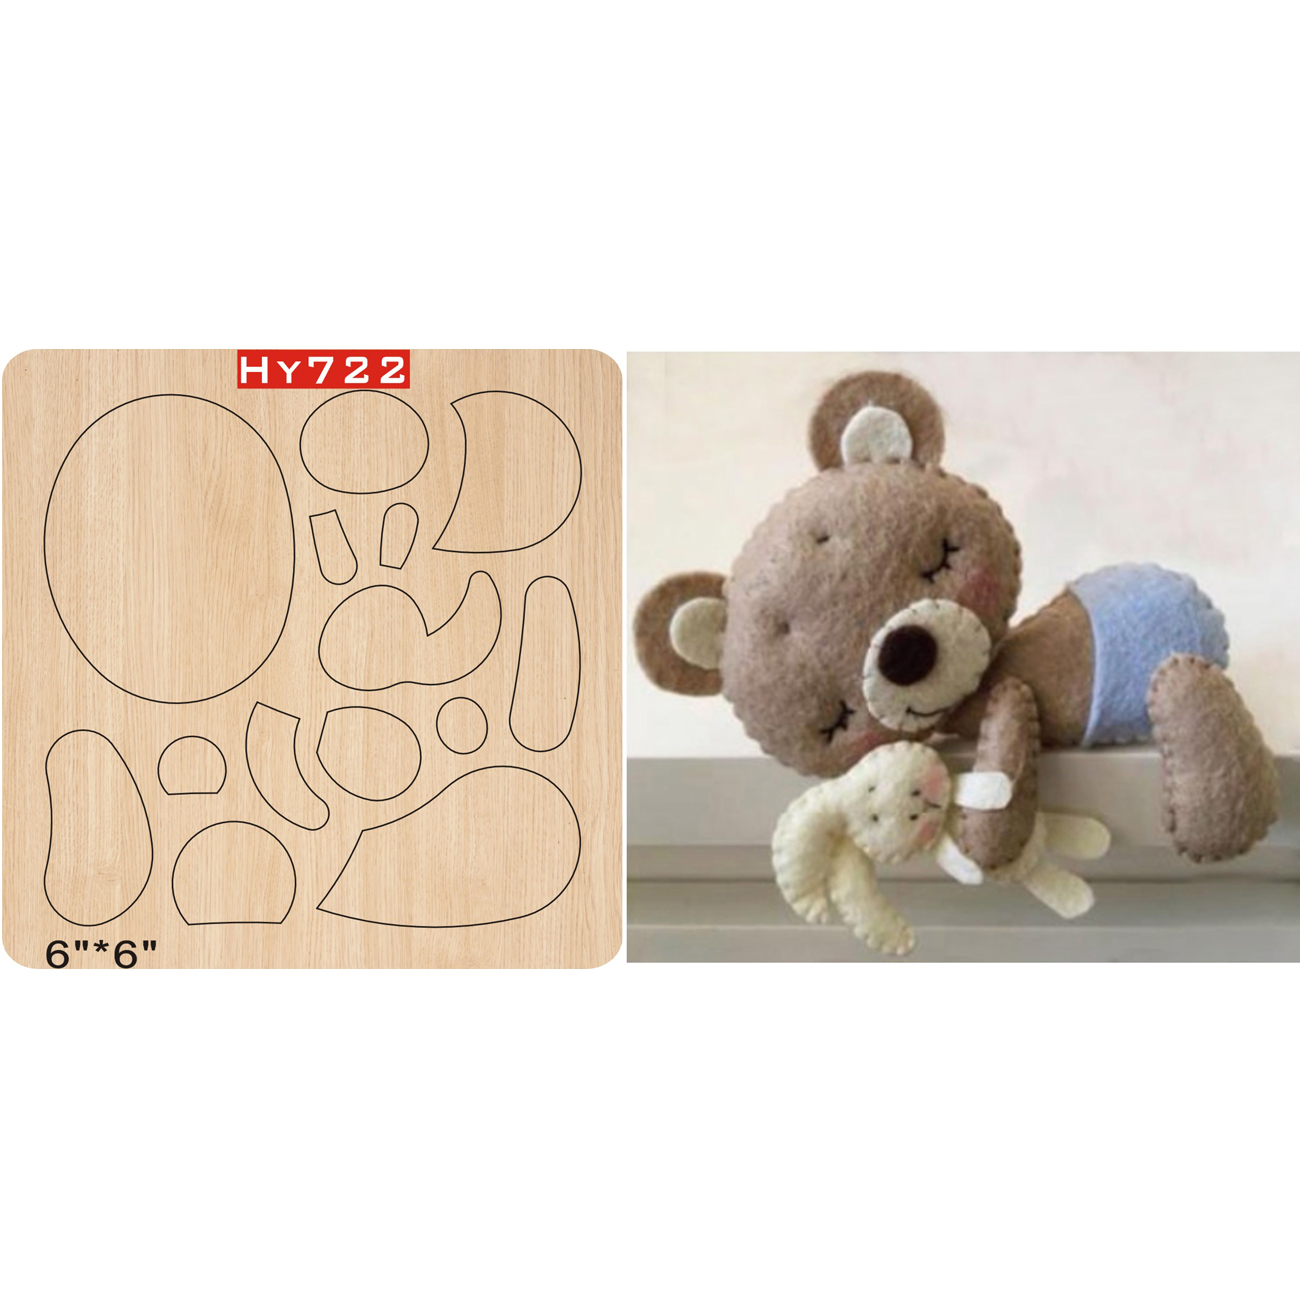 Little Bear Cutting Dies 2019 New Die Cut &wooden Dies Suitable  For Common Die Cutting  Machines On The Market